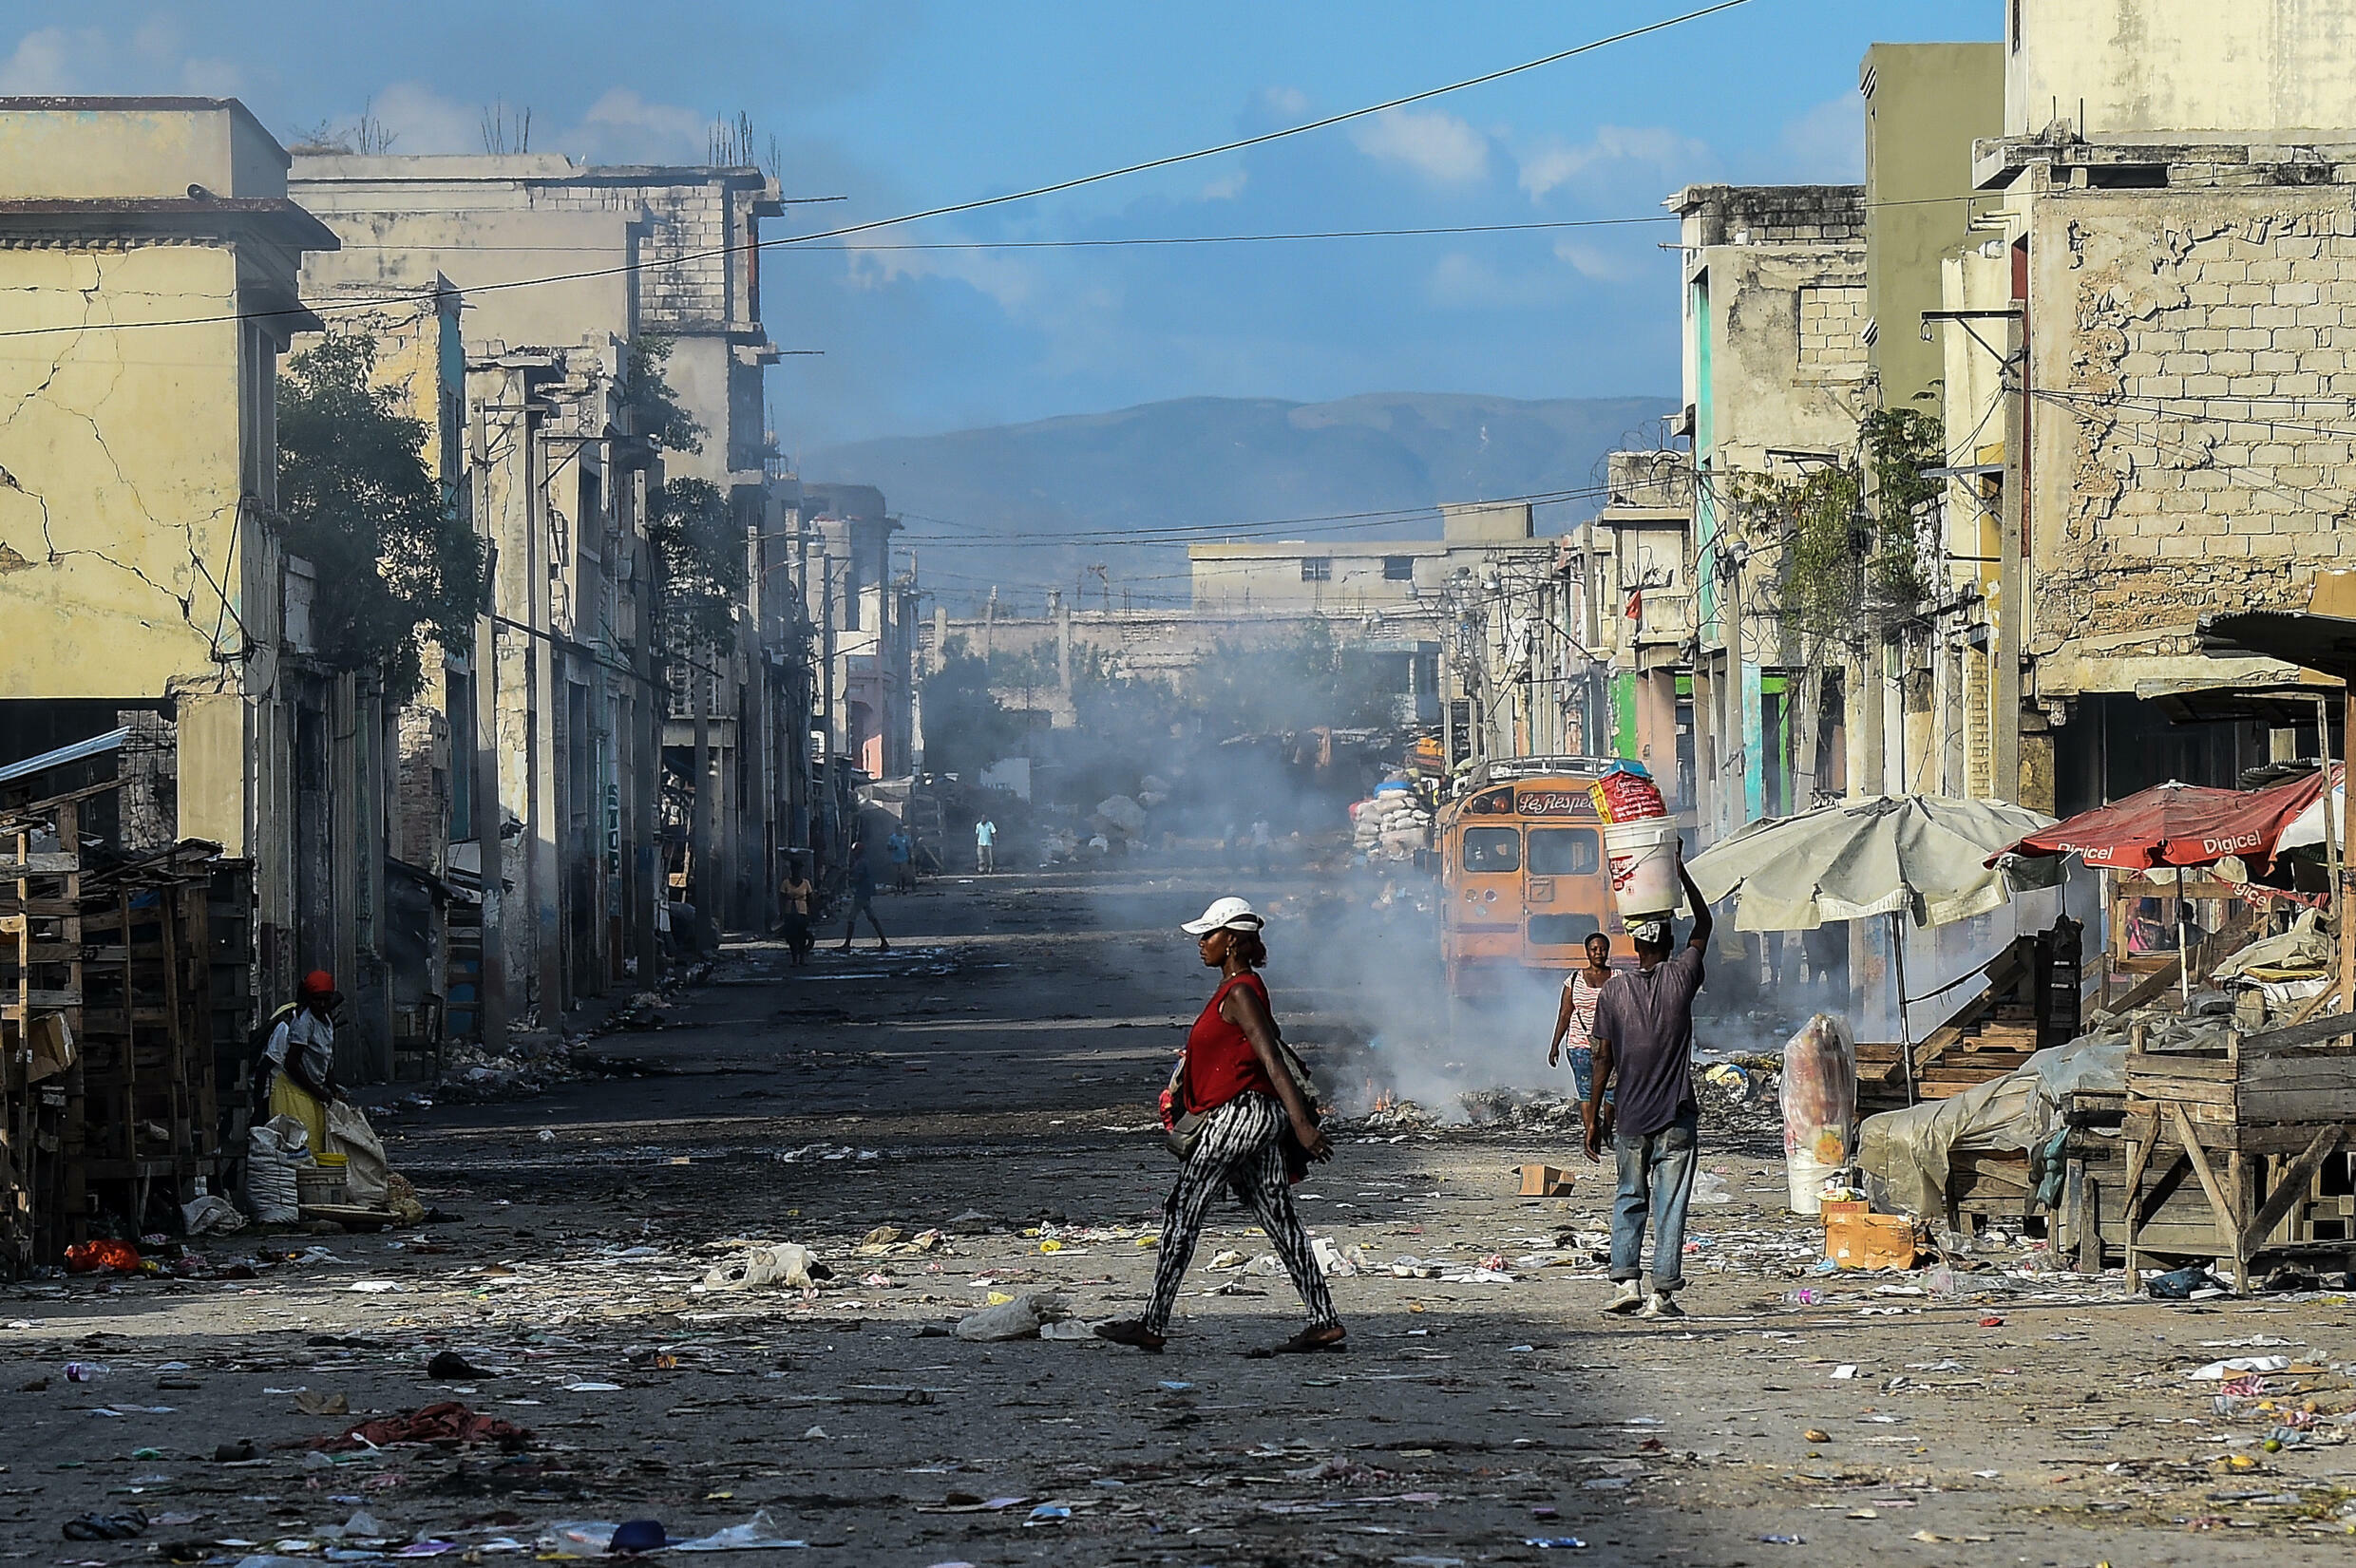 Haiti has been plagued by multiple crises in 2021, including the abduction of some 15 missionaries and children by a criminal gang operating in and around the capital Port-au-Prince